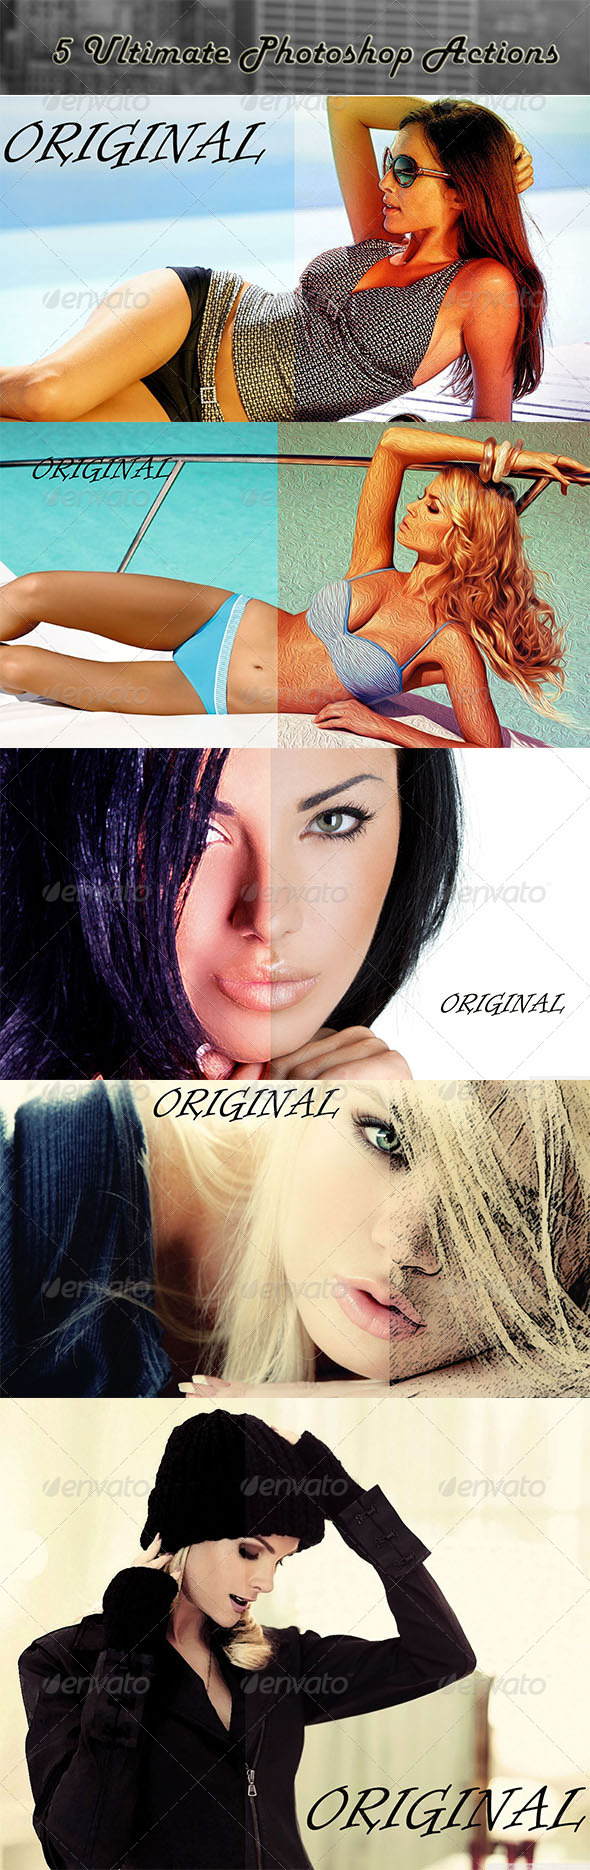 GraphicRiver 5 Ultimate Photoshop Actions 8504594